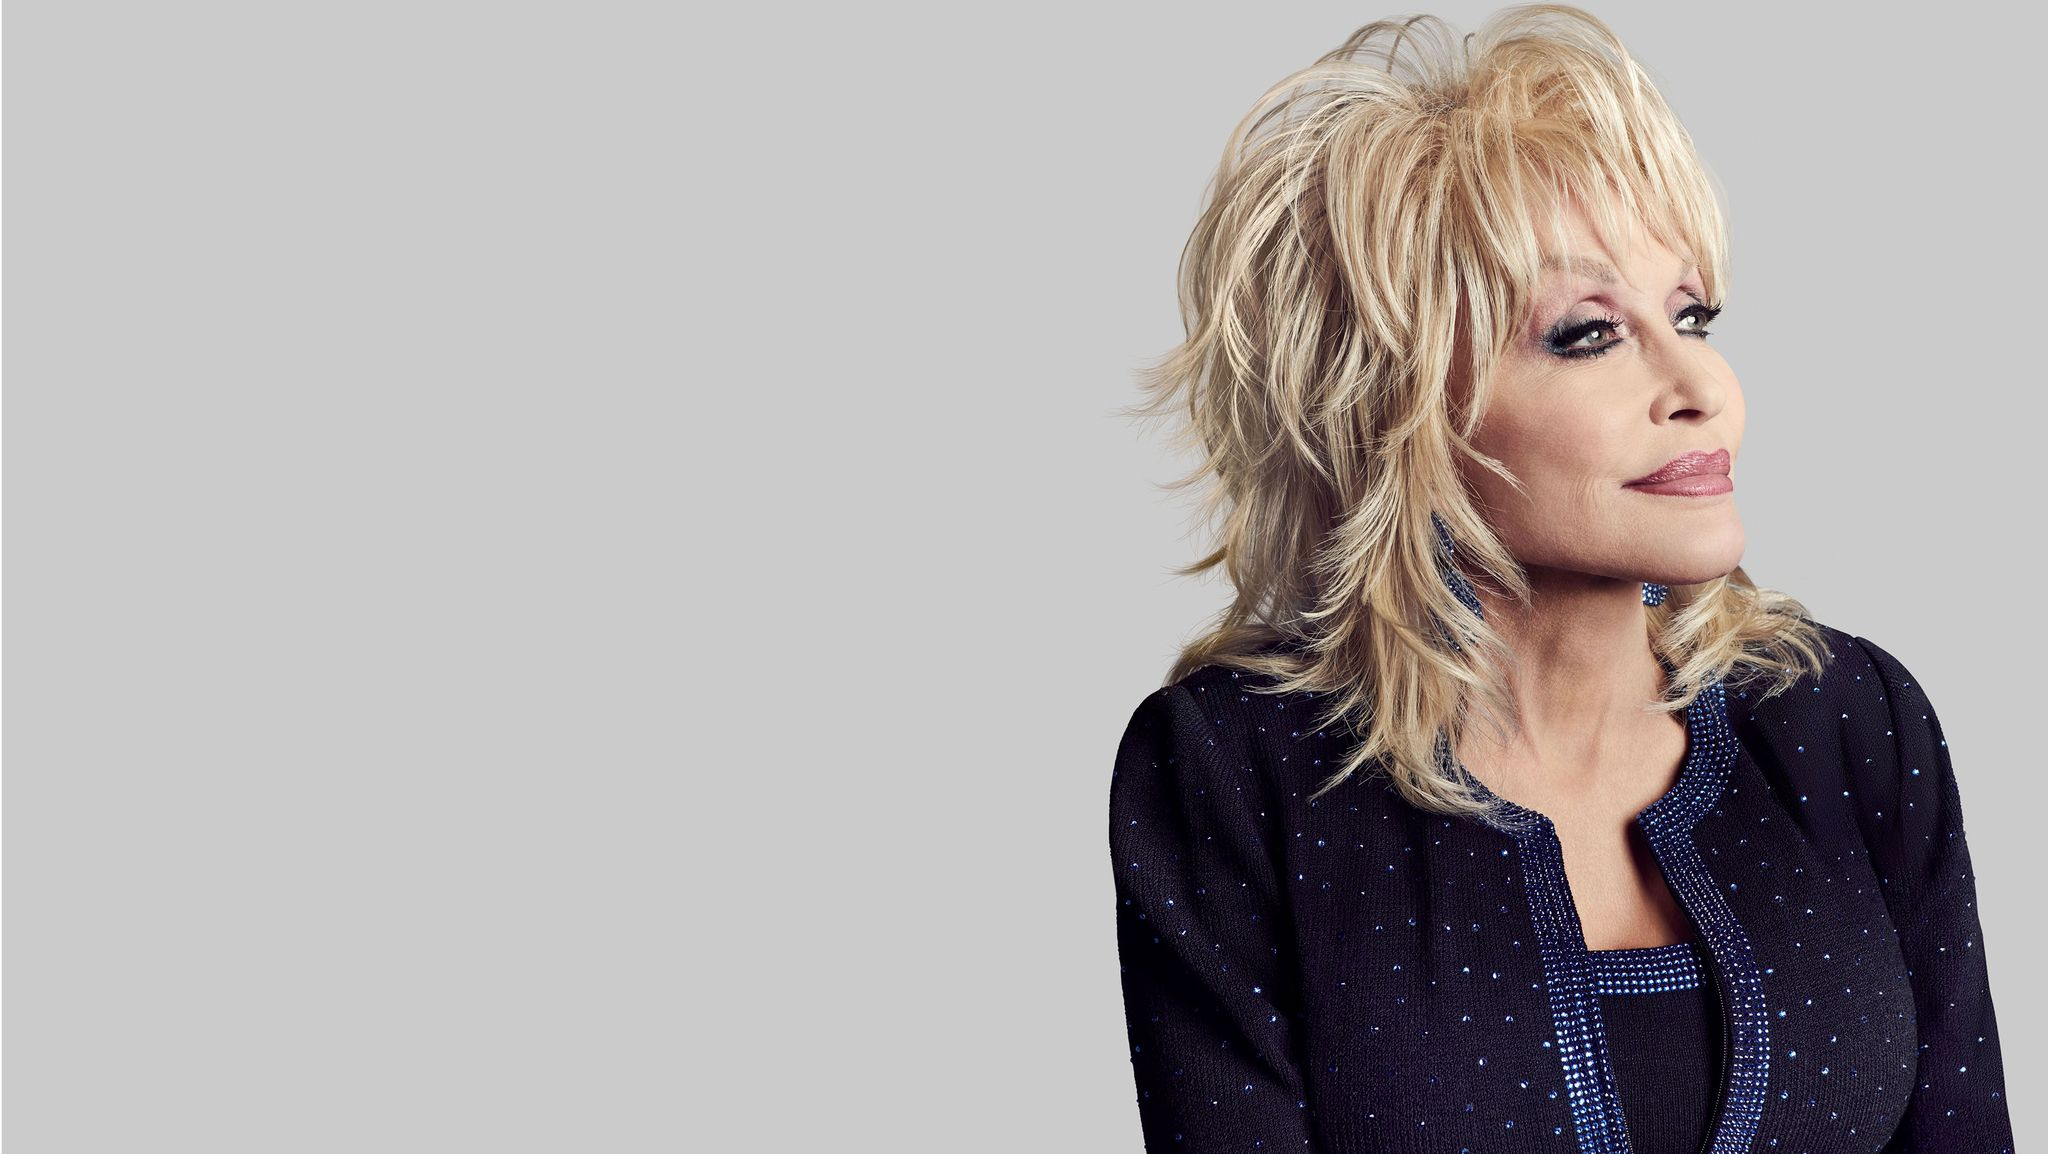 Dolly Parton May Look Artificial, But She's Totally Real